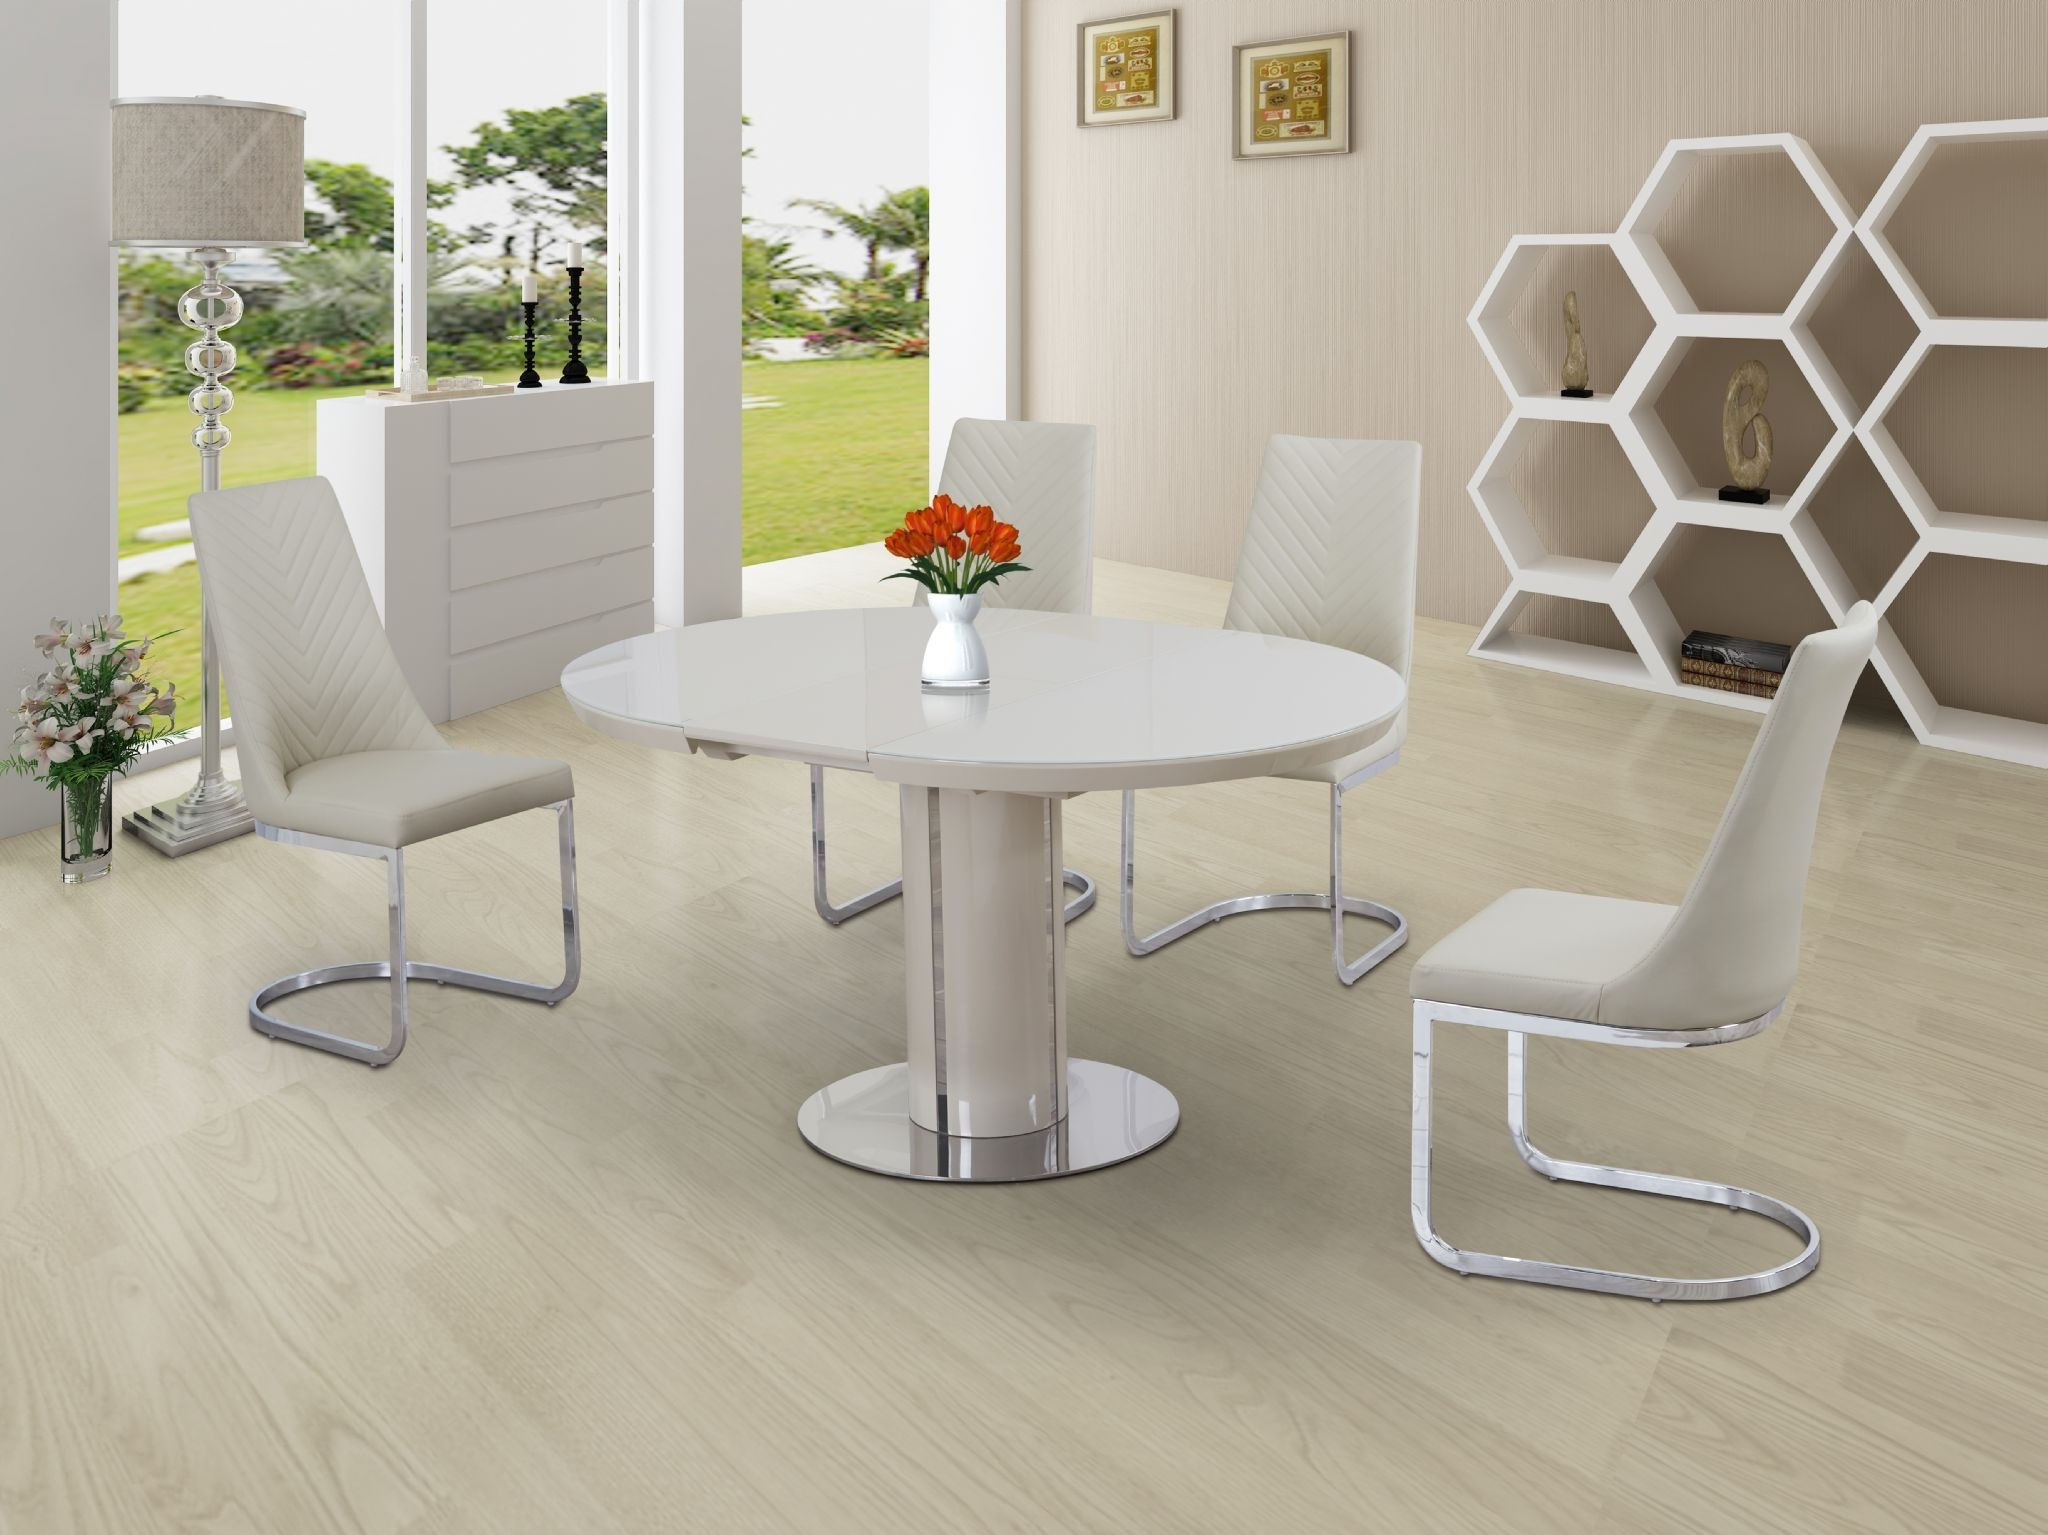 Small Round Extending Dining Tables Intended For 2018 Buy Cream Small Round Extendable Dining Table Today (View 2 of 25)